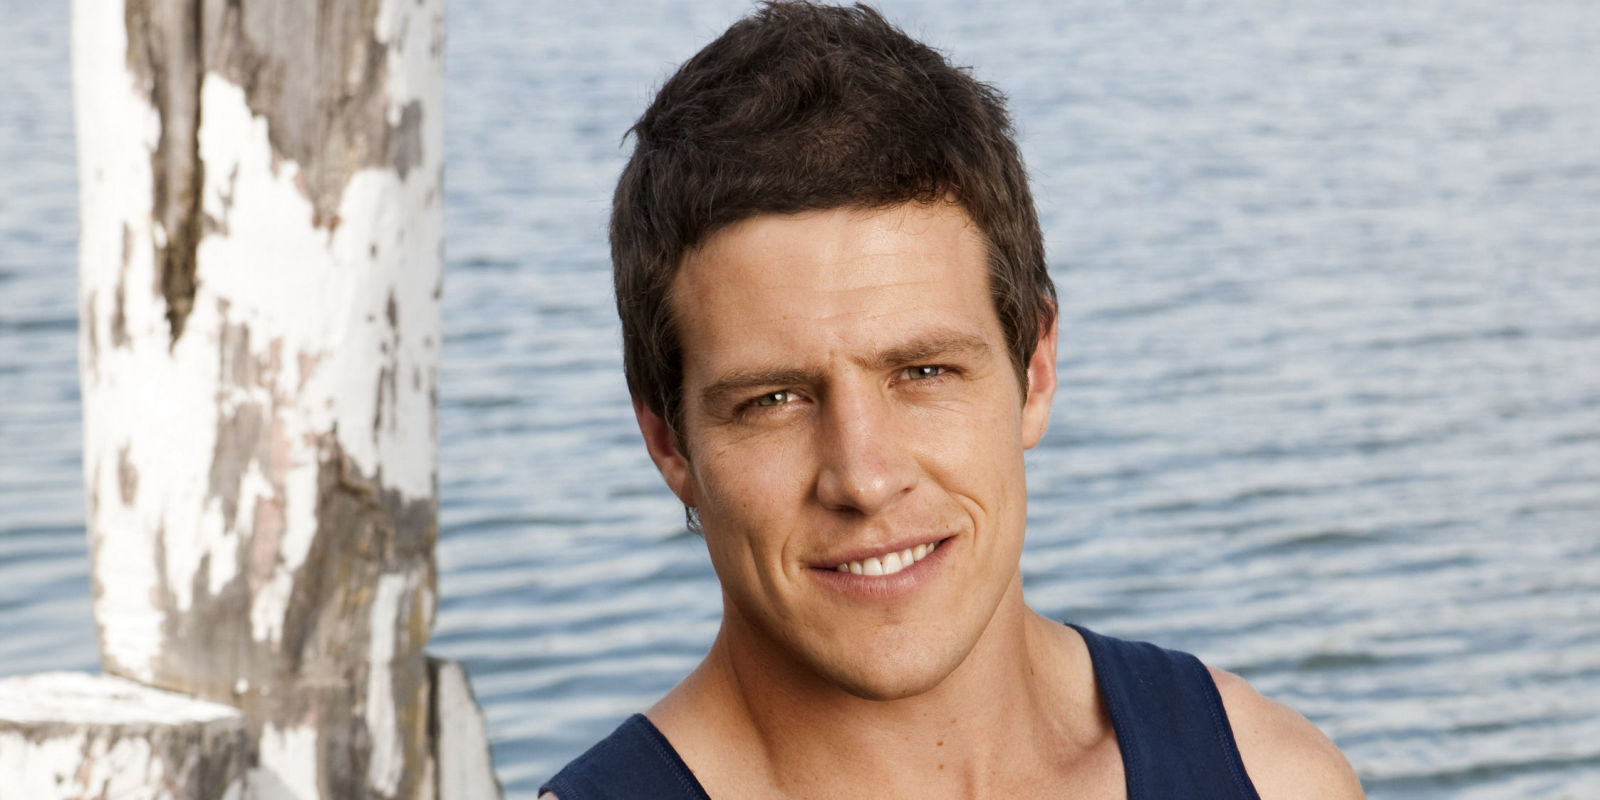 who is brax from home and away dating Home and away's resident hunk steave peacocke, who plays darryl 'brax' braxton on the soapie, reveals that he'll be leaving the show and sailing to hollywood's shores.